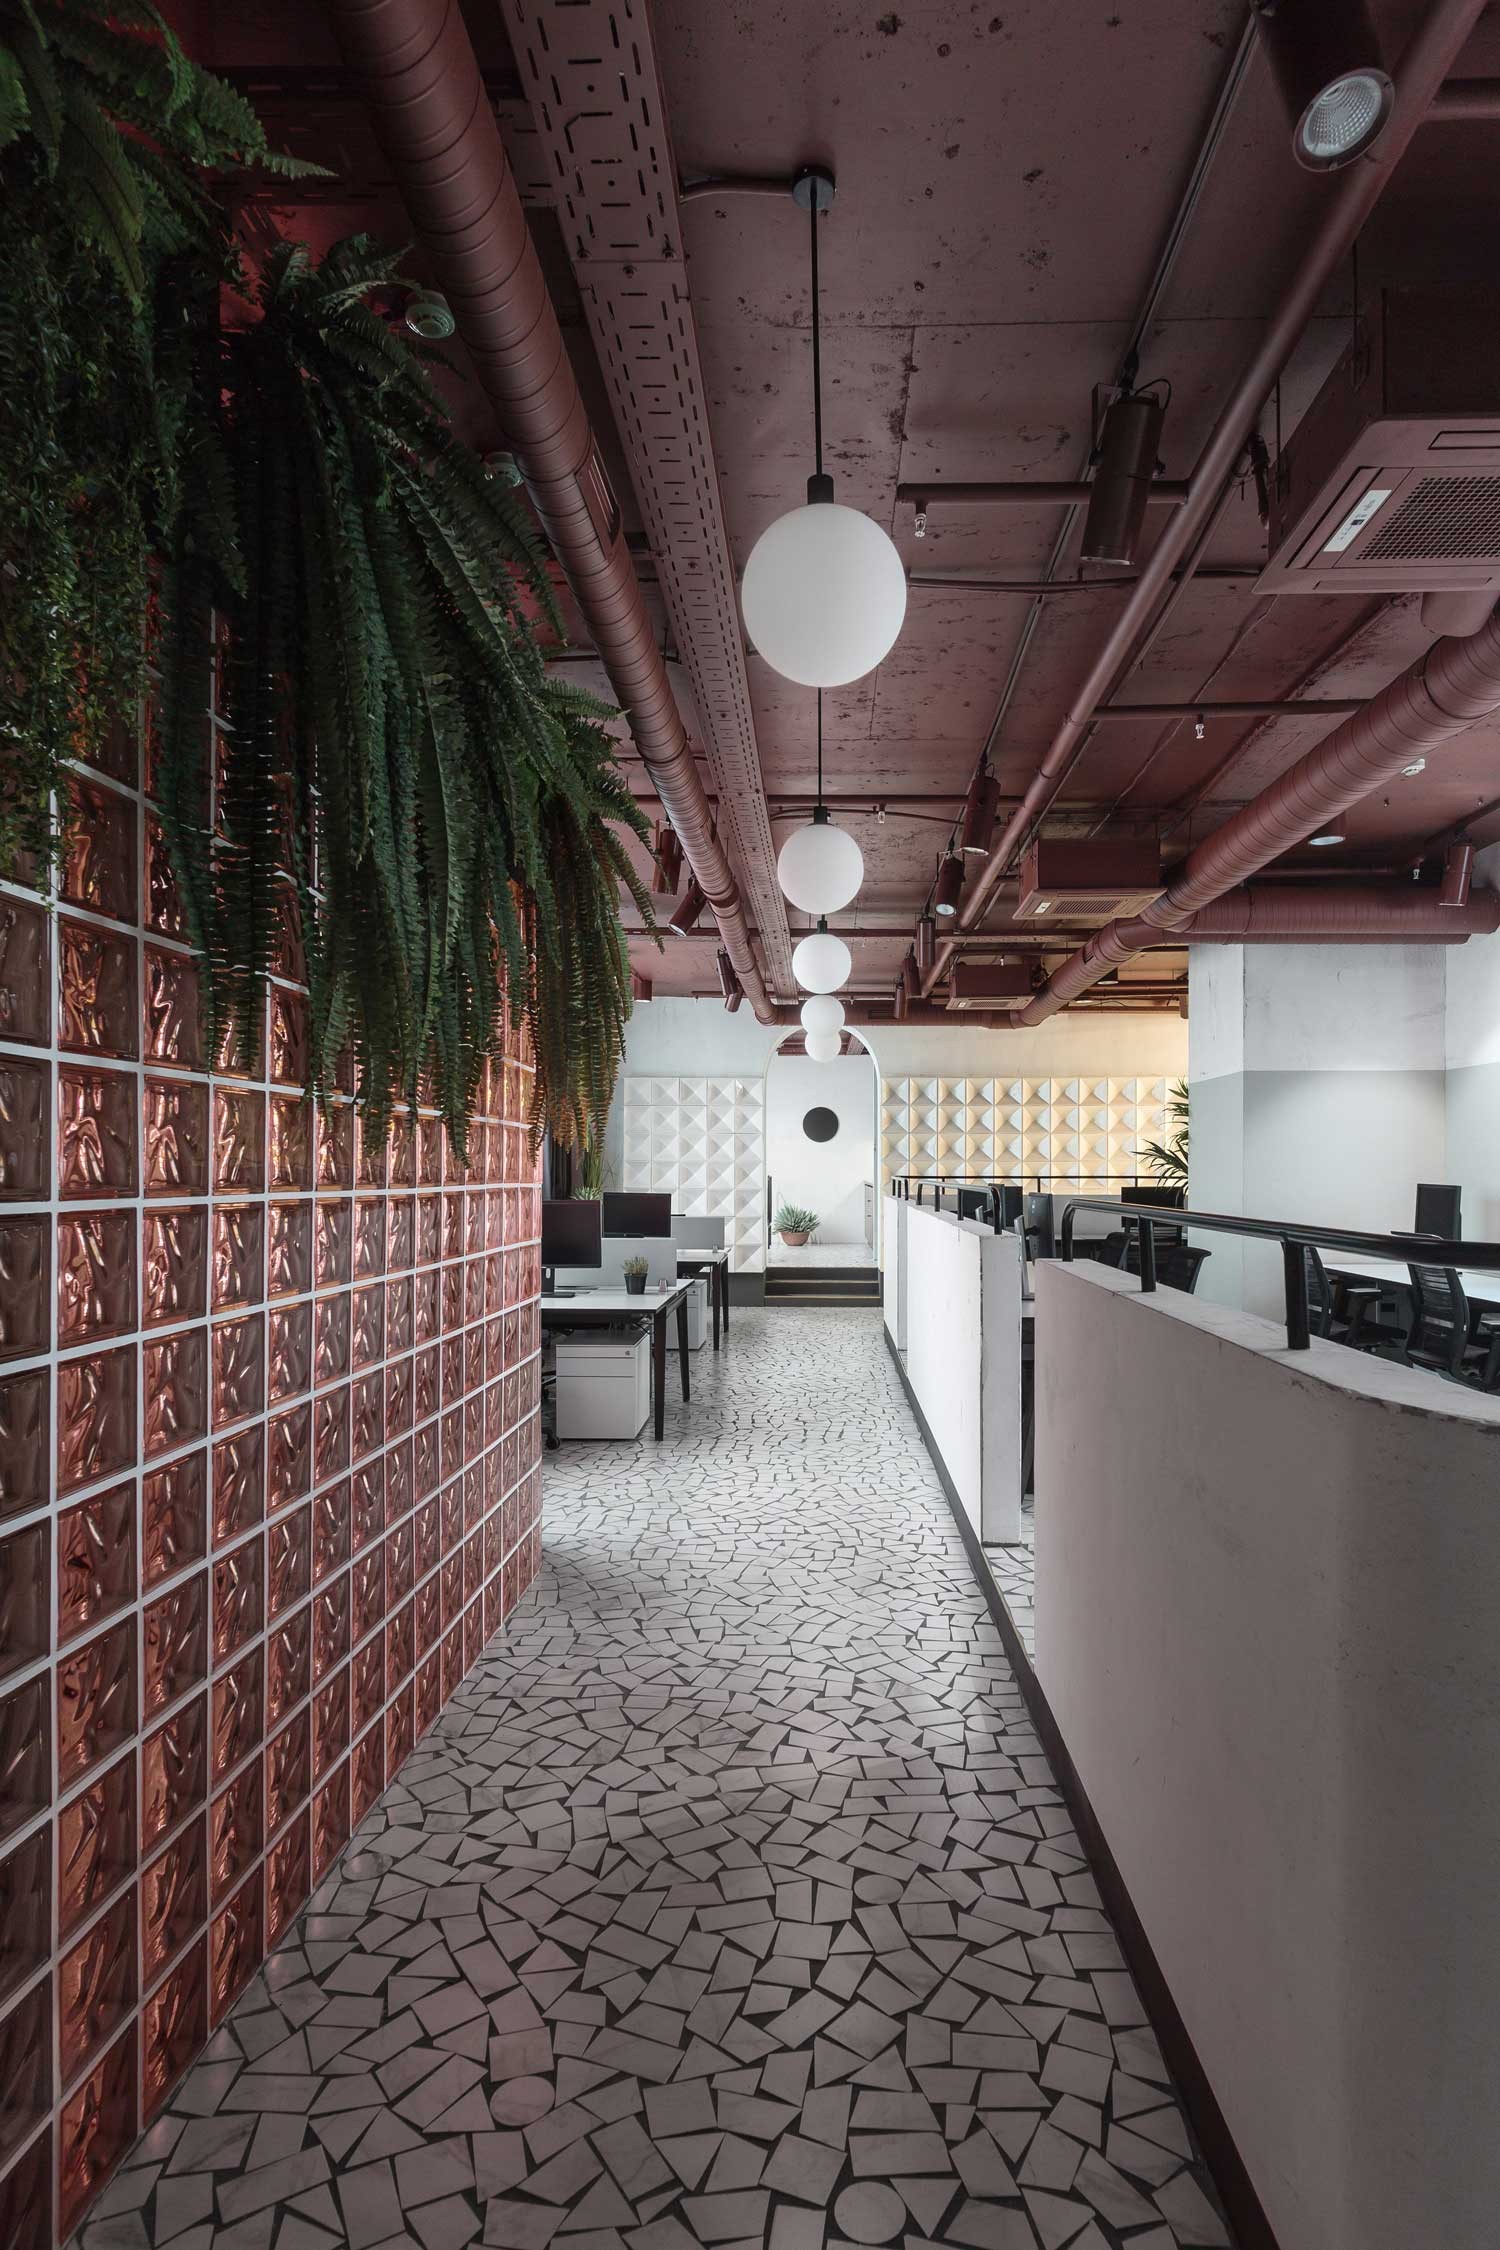 Vizor gaming company hq by studio11 in minsk belarus for Floor finishes definition